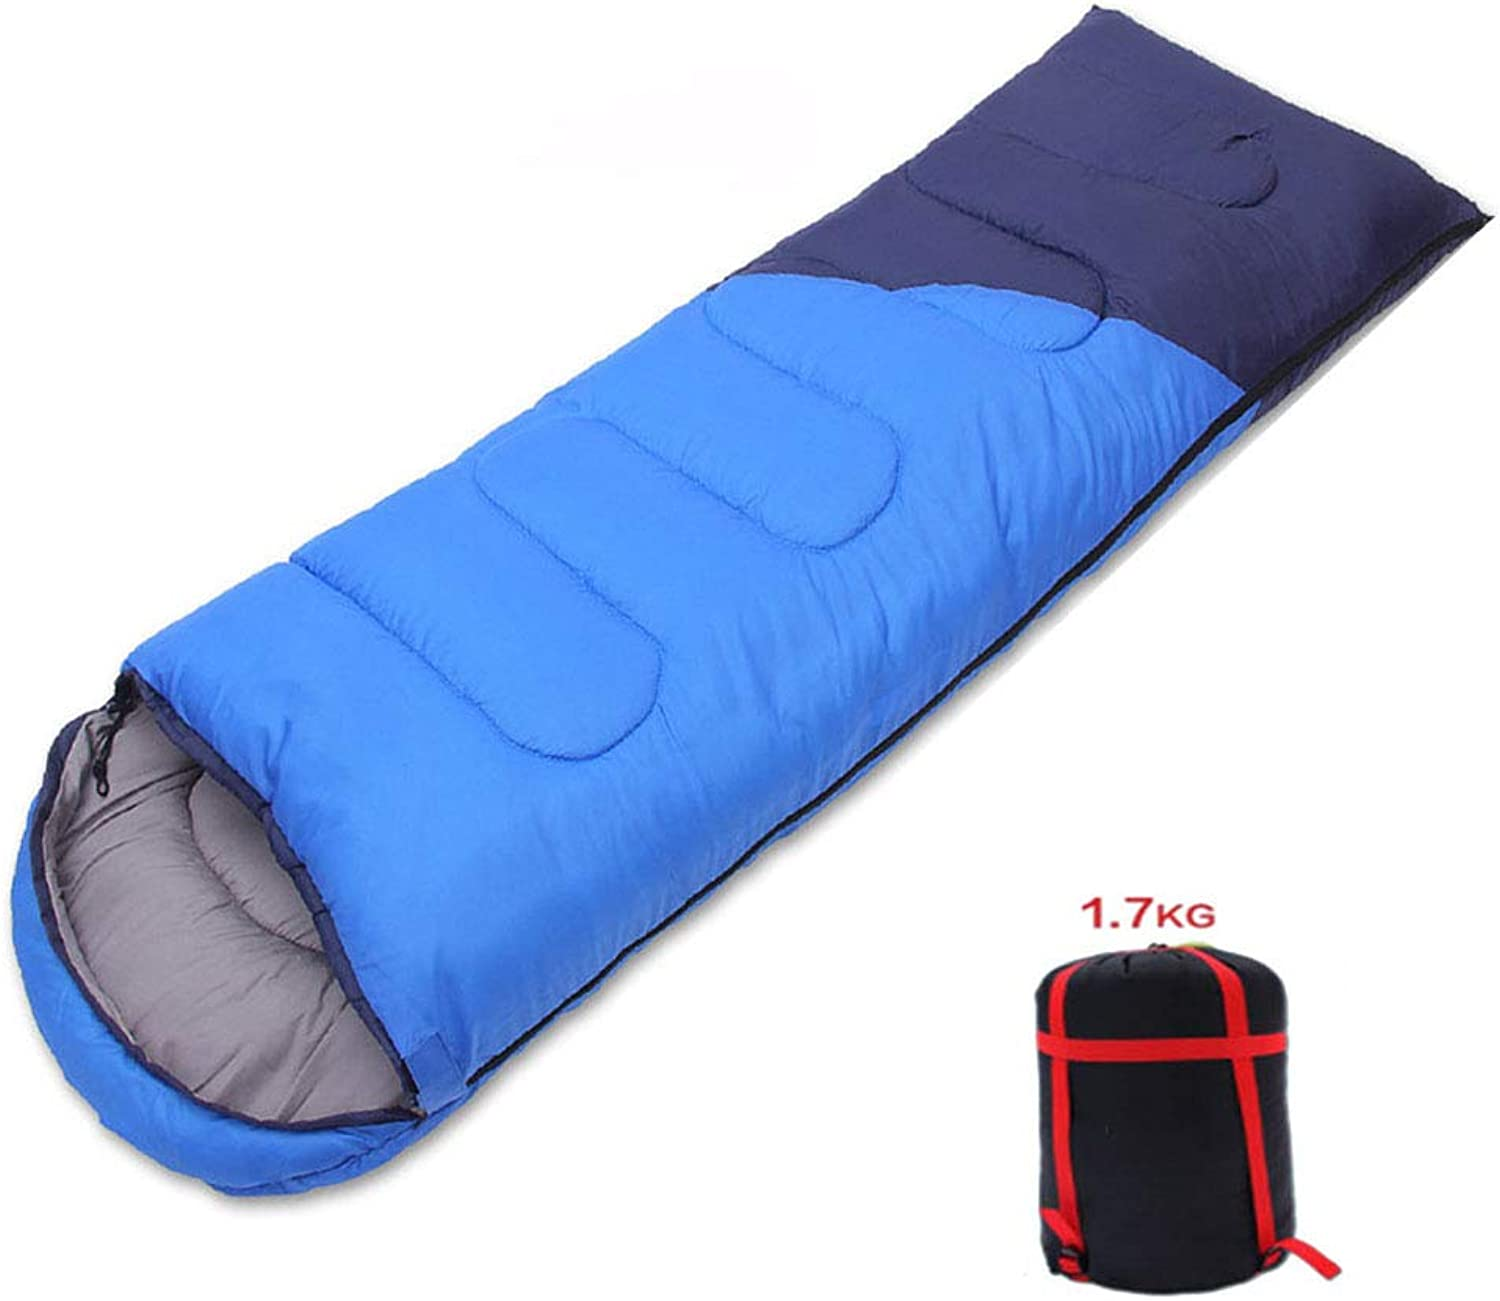 Camping Adult Cotton sleeping bag, Four Seasons, can be Spliced, blueee, Cotton 1.7Kg m2